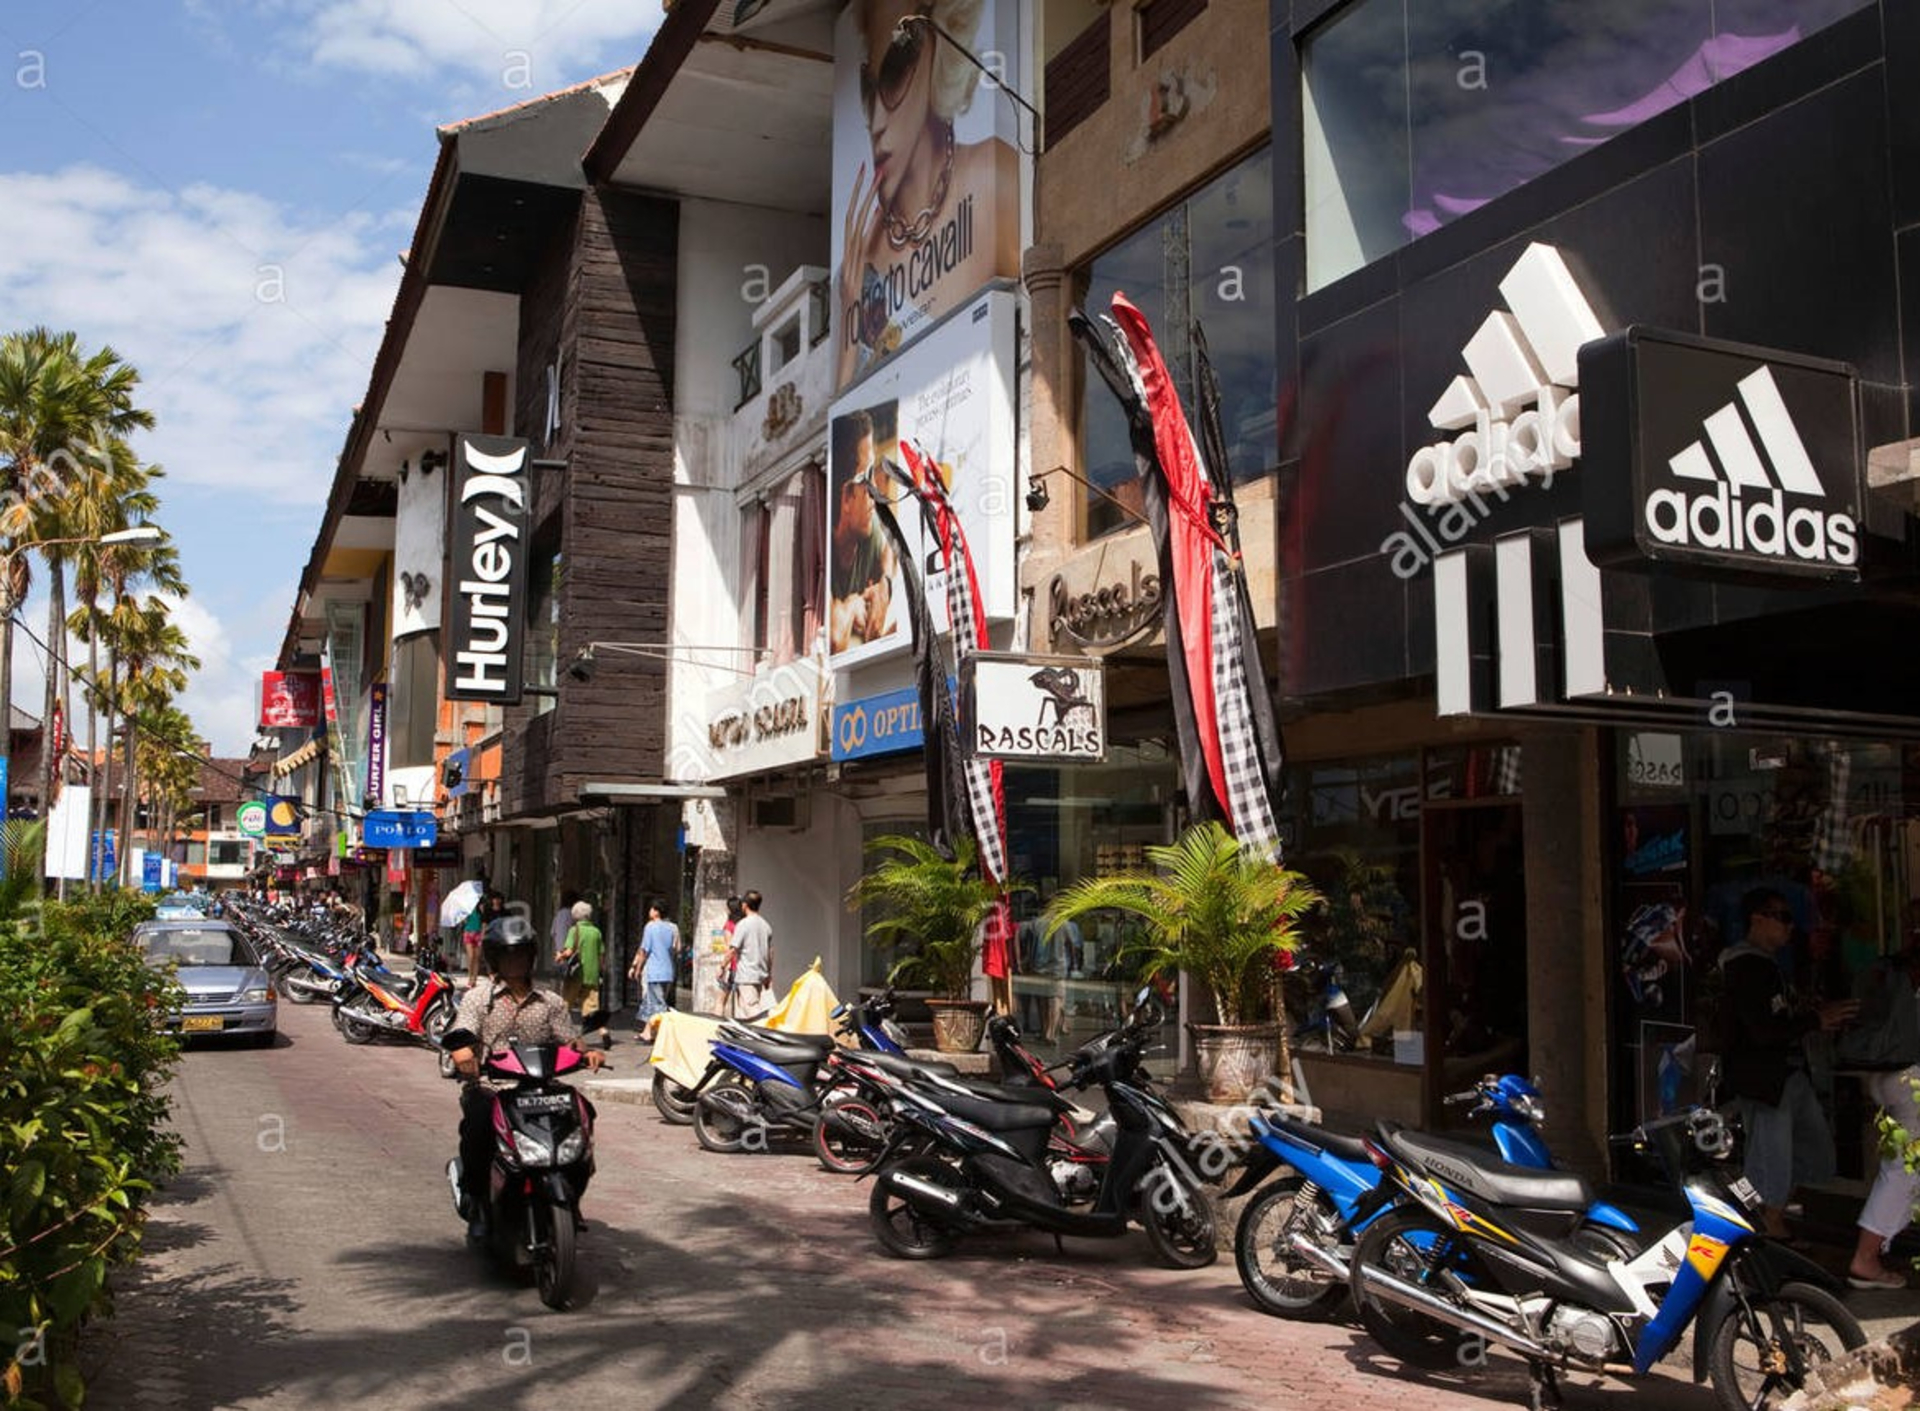 The Beautitude - indonesia-bali-kuta-square-shopping-complex-adidas-shop-BJ5XMN